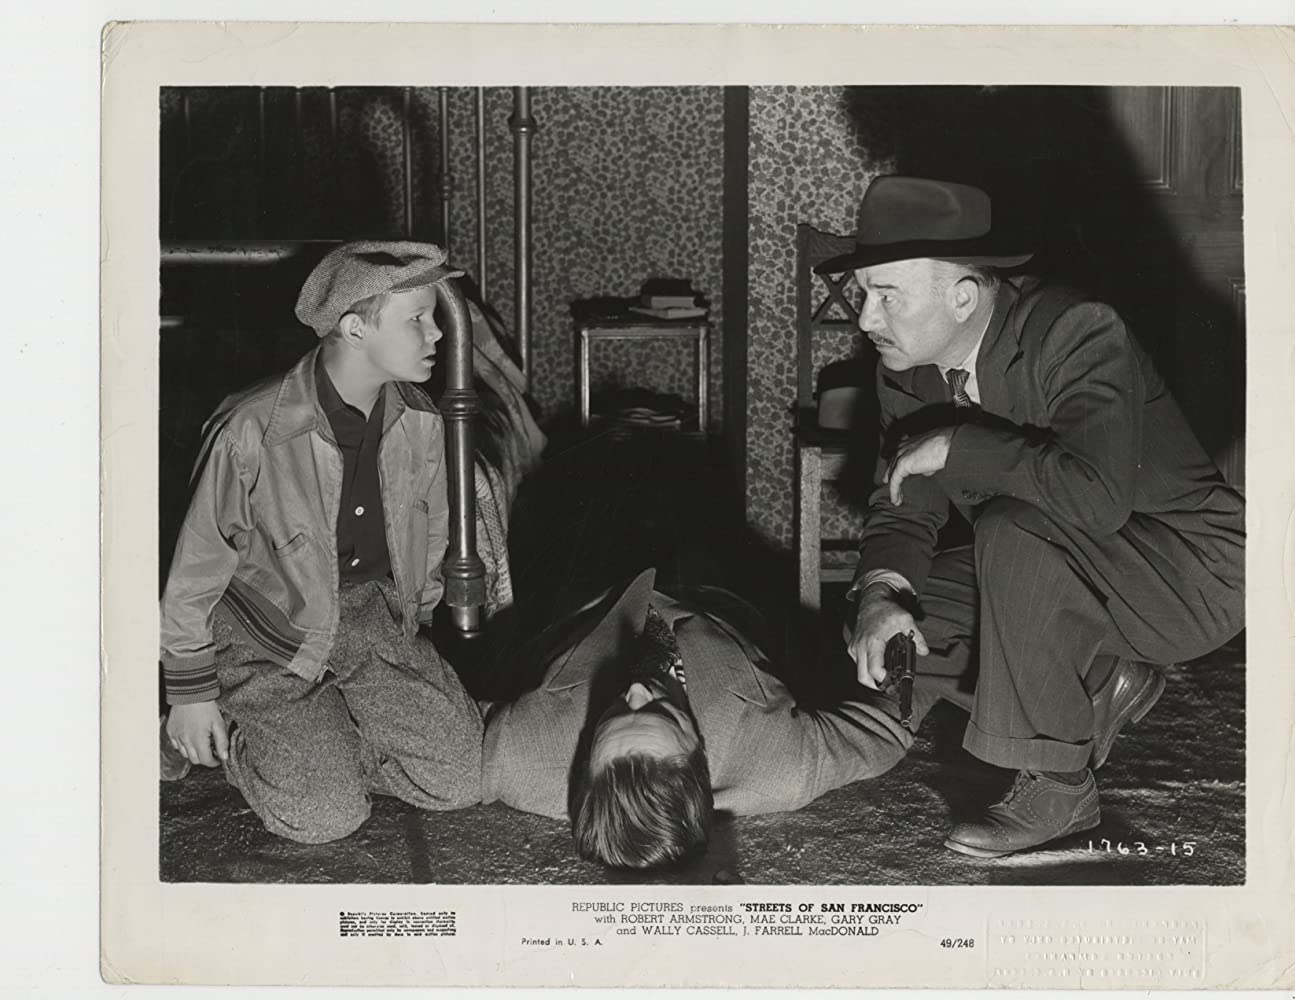 Robert Armstrong and Gary Gray in Streets of San Francisco (1949)